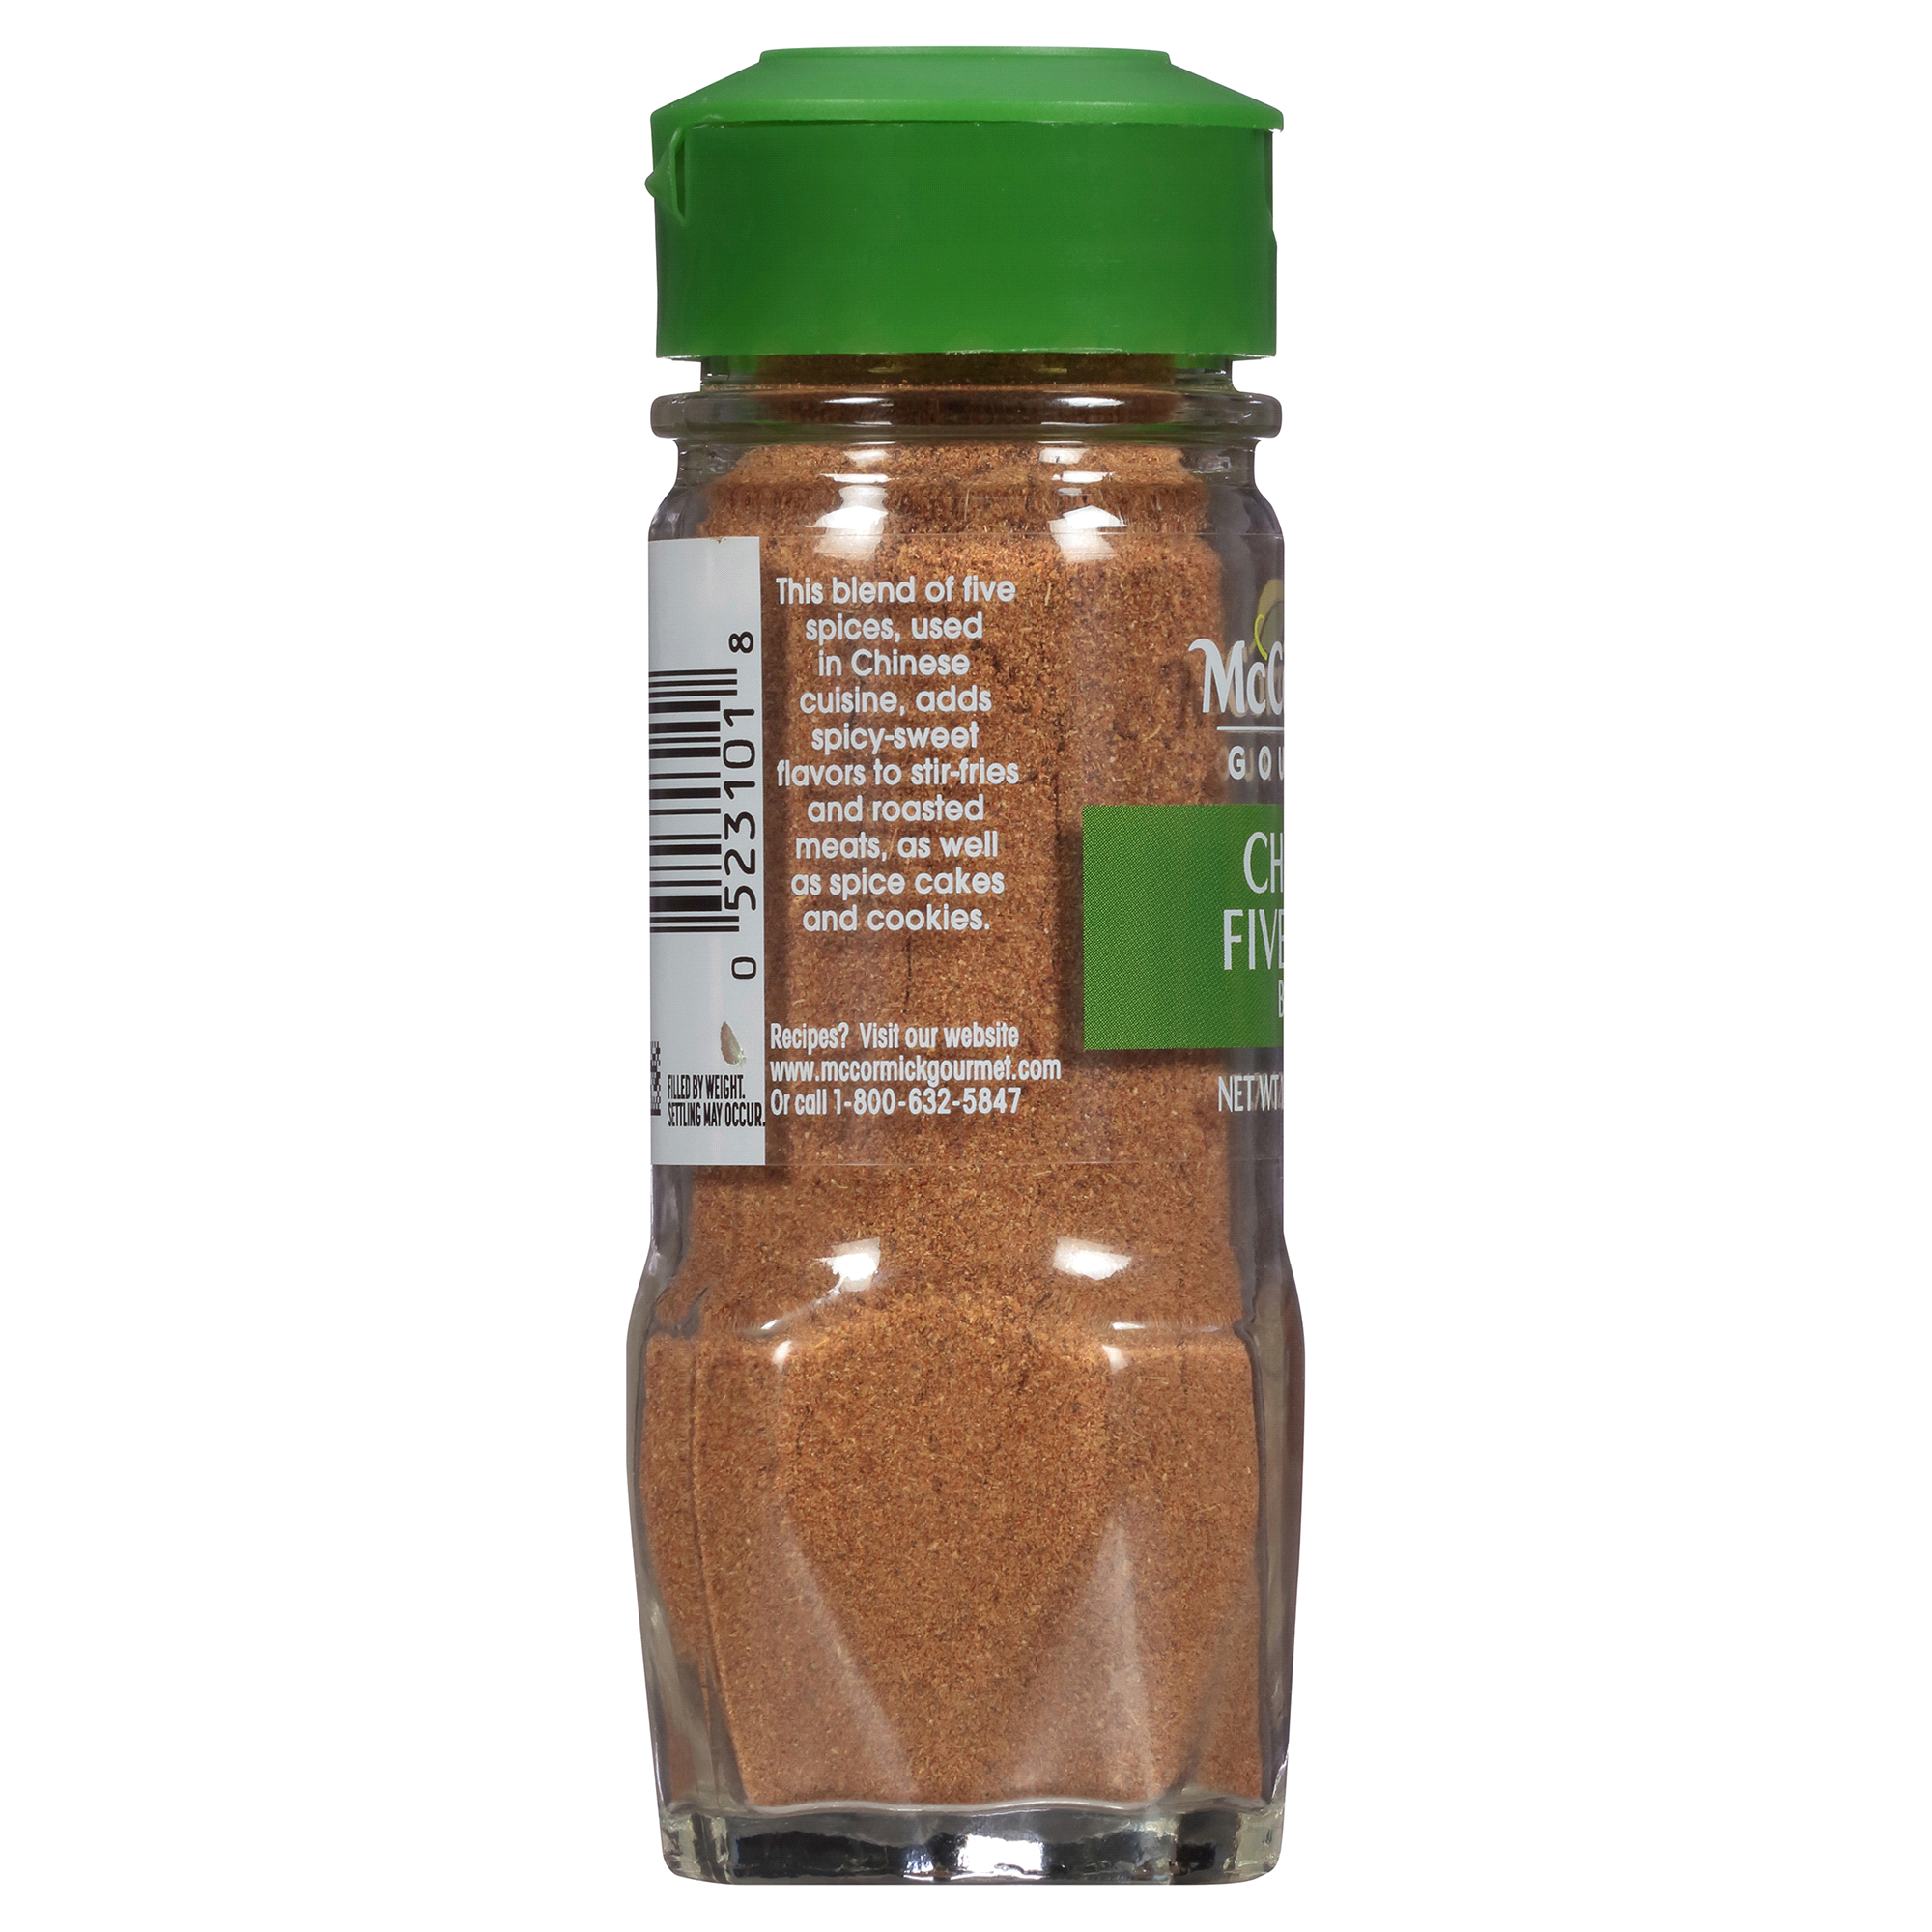 McCormick Gourmet Chinese Five Spice Blend 1.75 oz | Meijer.com